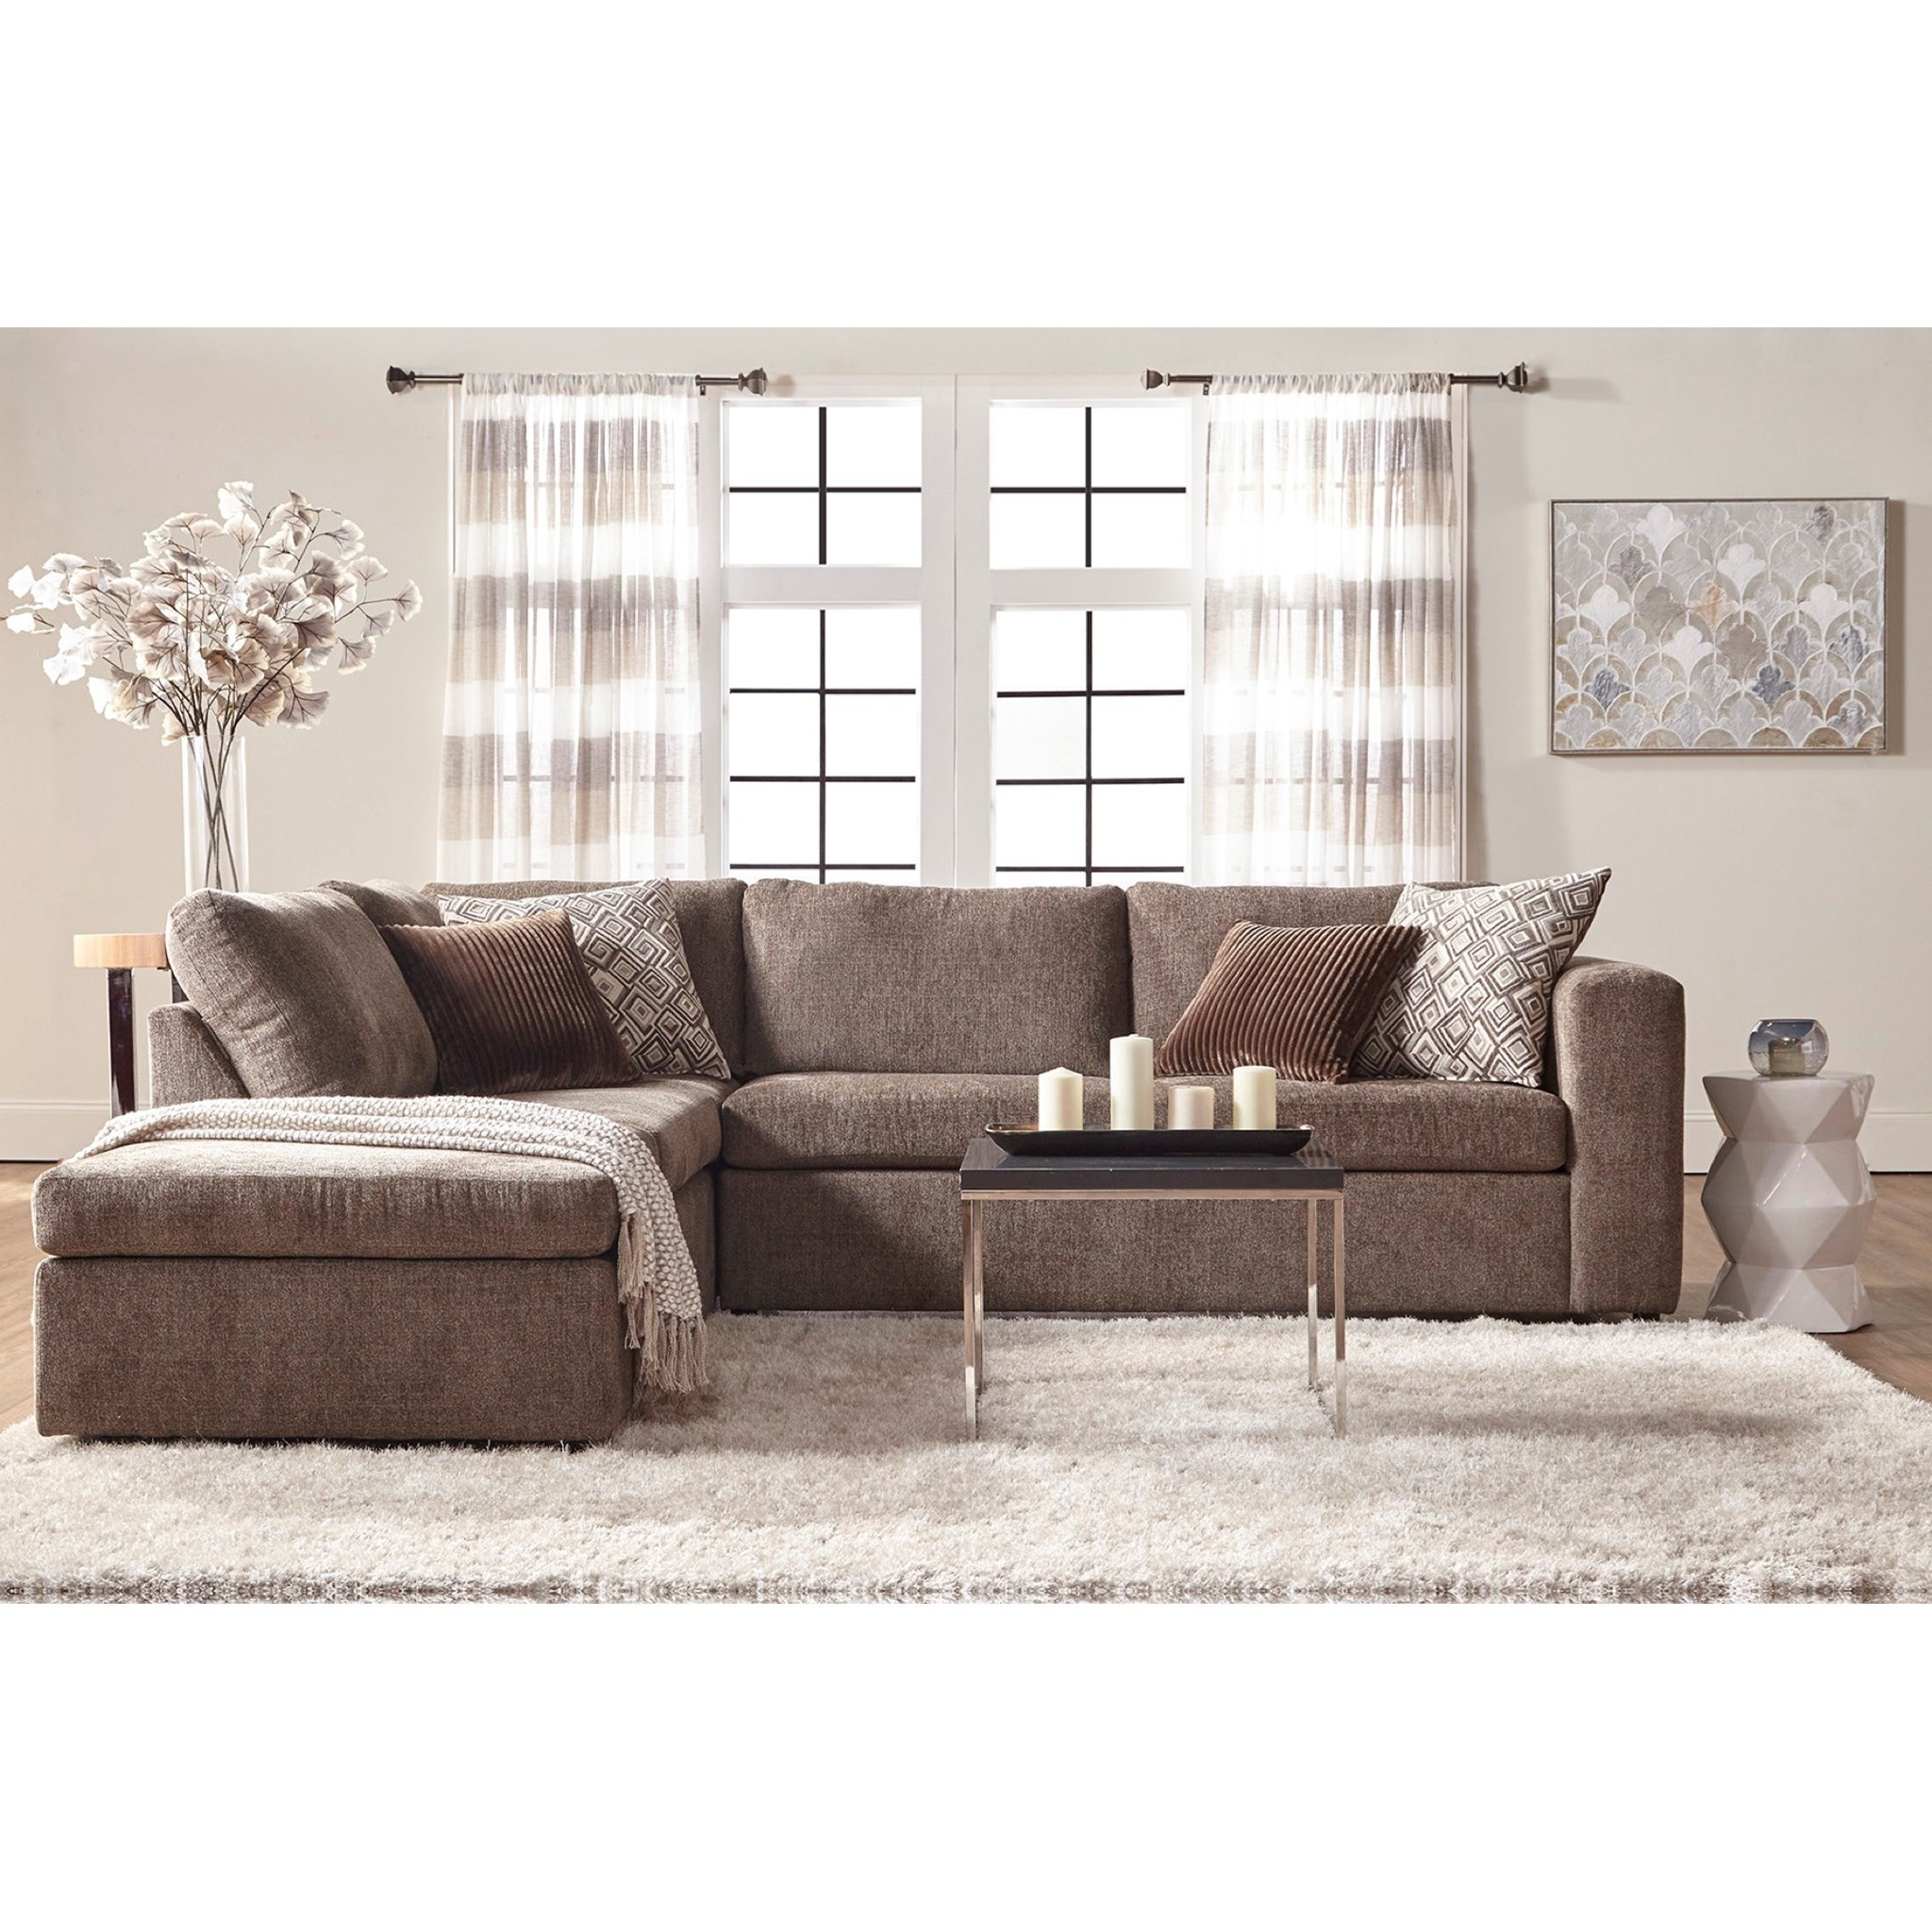 Delicieux Angora Casual Contemporary Sectional Sofa With Chaise By Serta Upholstery